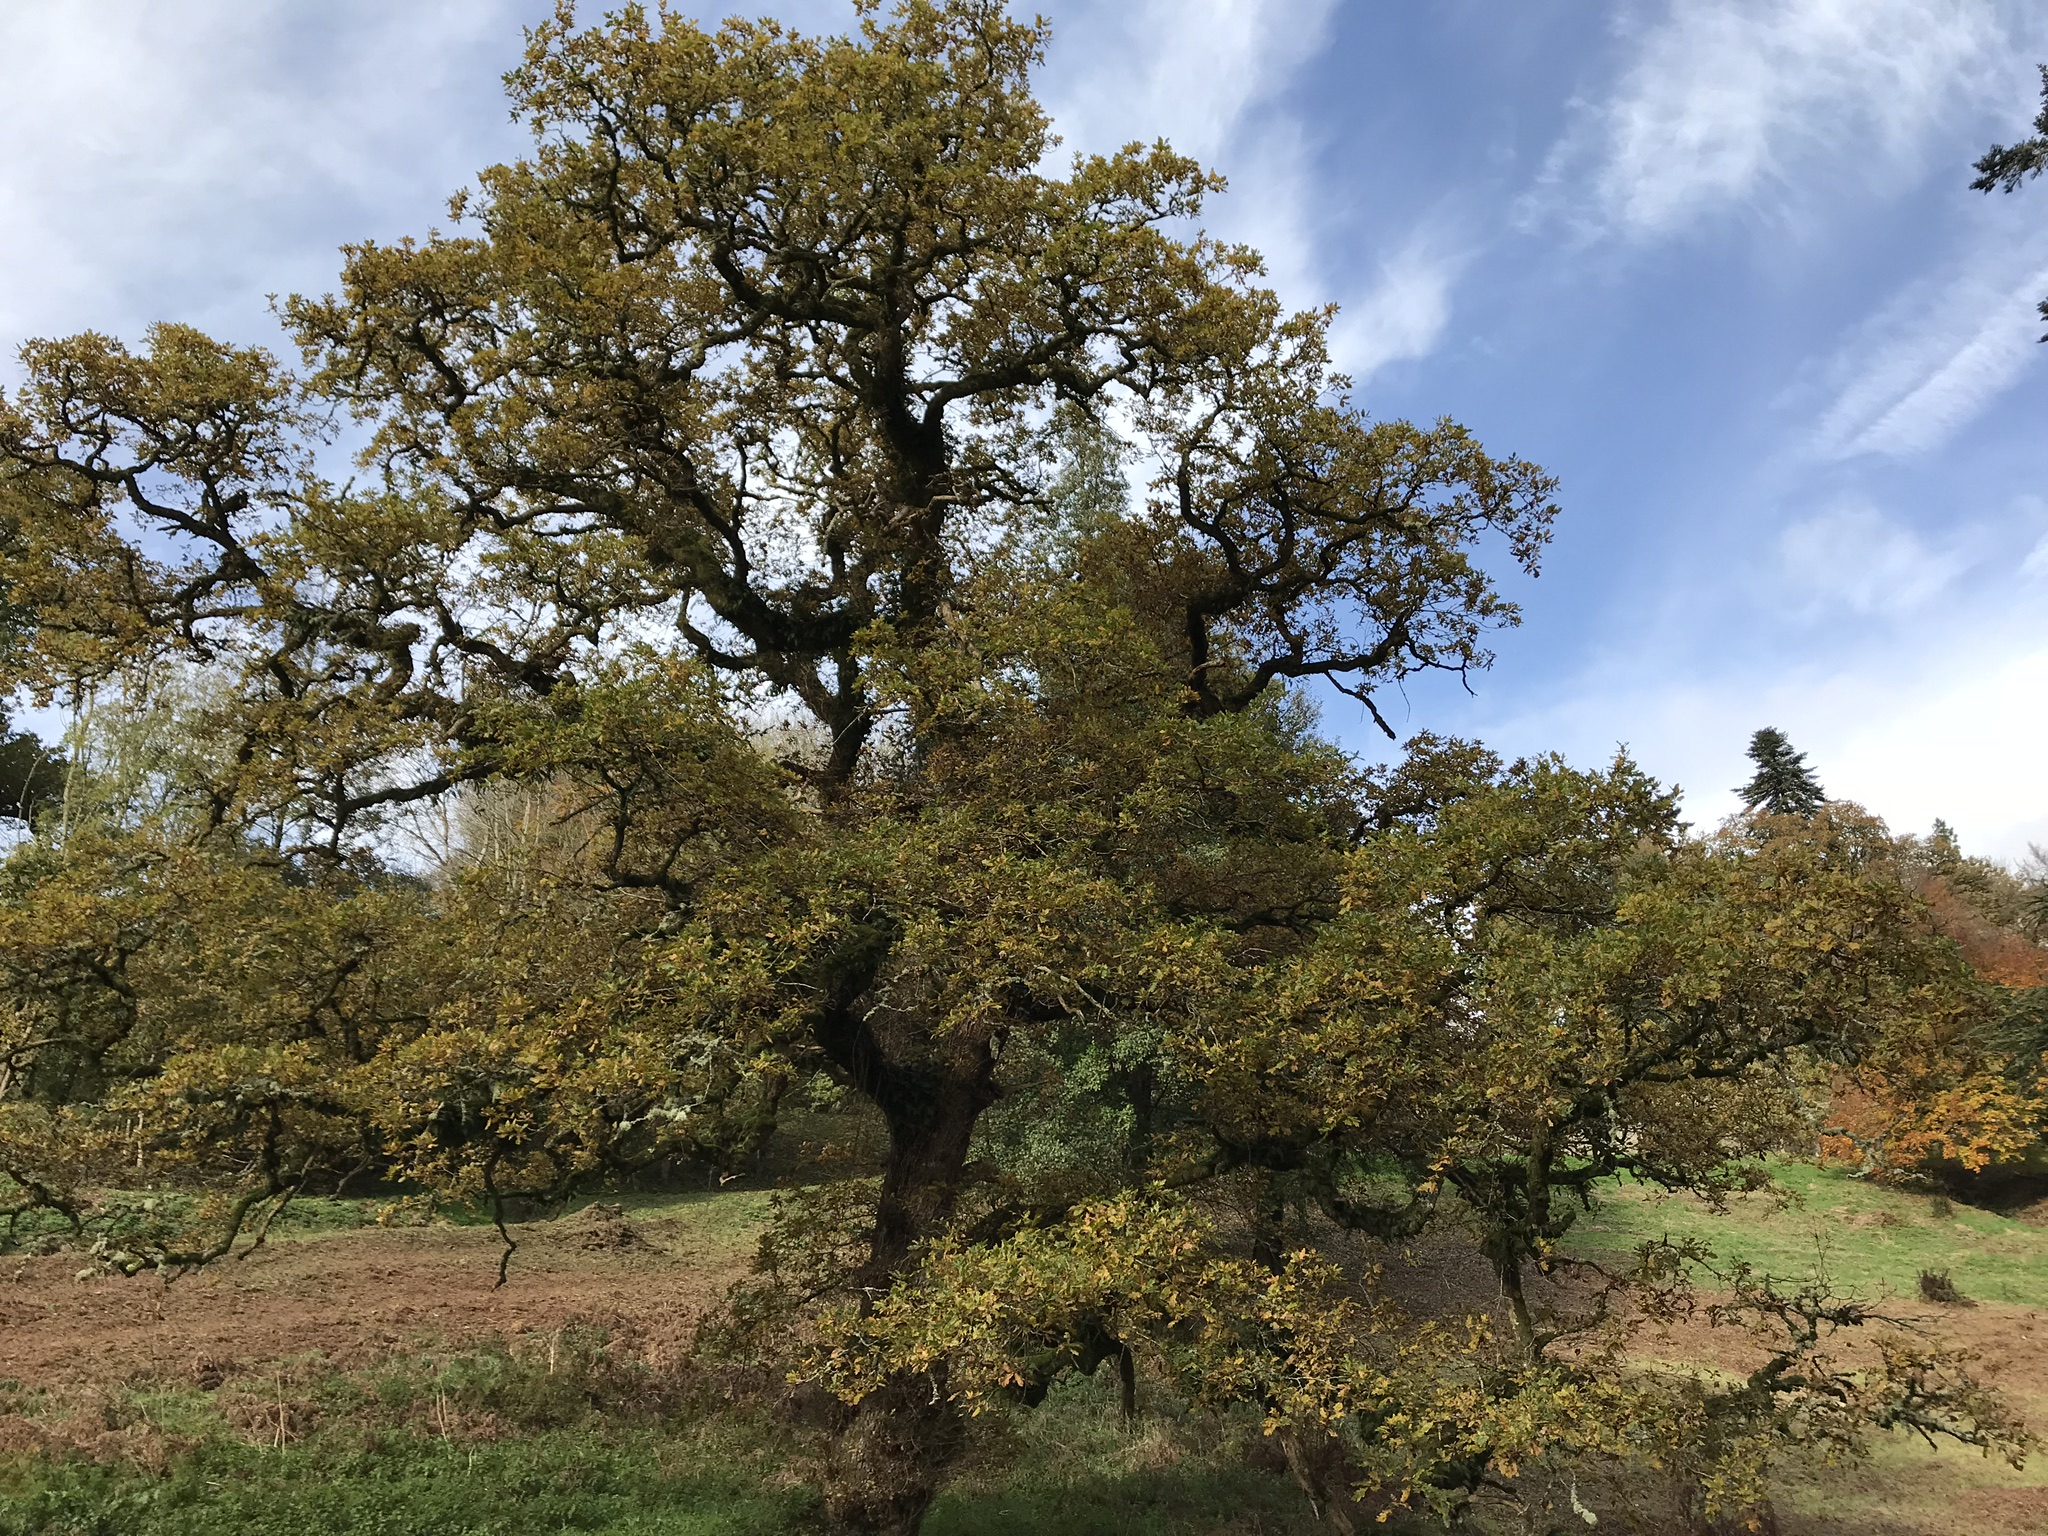 Sign the Tree Charter - On 6 November 2017, the 800th anniversary of the influential 1217 Charter of the Forest, the Woodland Trust launched the Charter for Trees, Woods and People.The Tree Charter will draw its strength from the hundreds of thousands of people across the UK that sign.